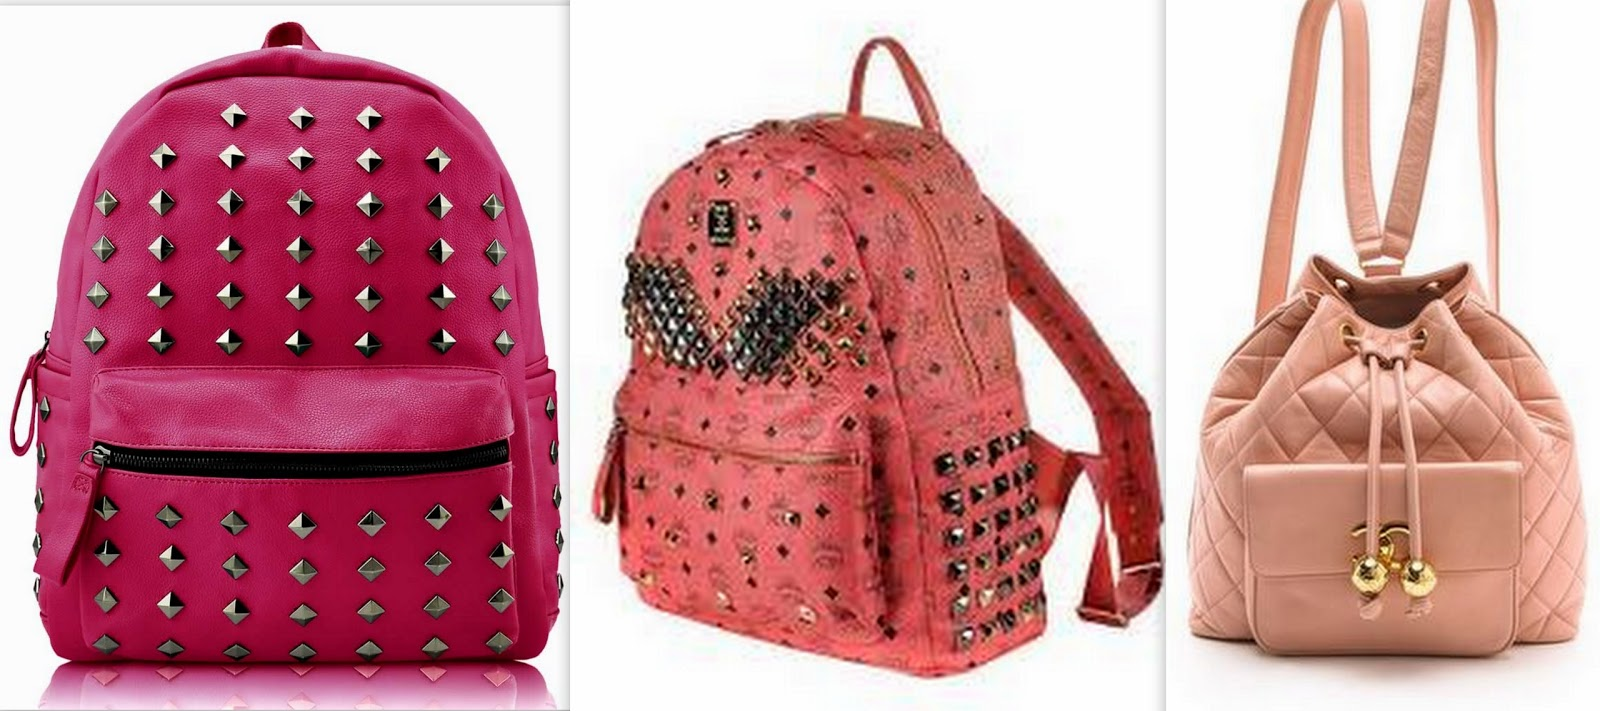 backpacks trend, animal print backpack, leopard print backpack, black and beige backpacks, designer backpacks, pink backpacks, floral backpacks, trends spring 2014